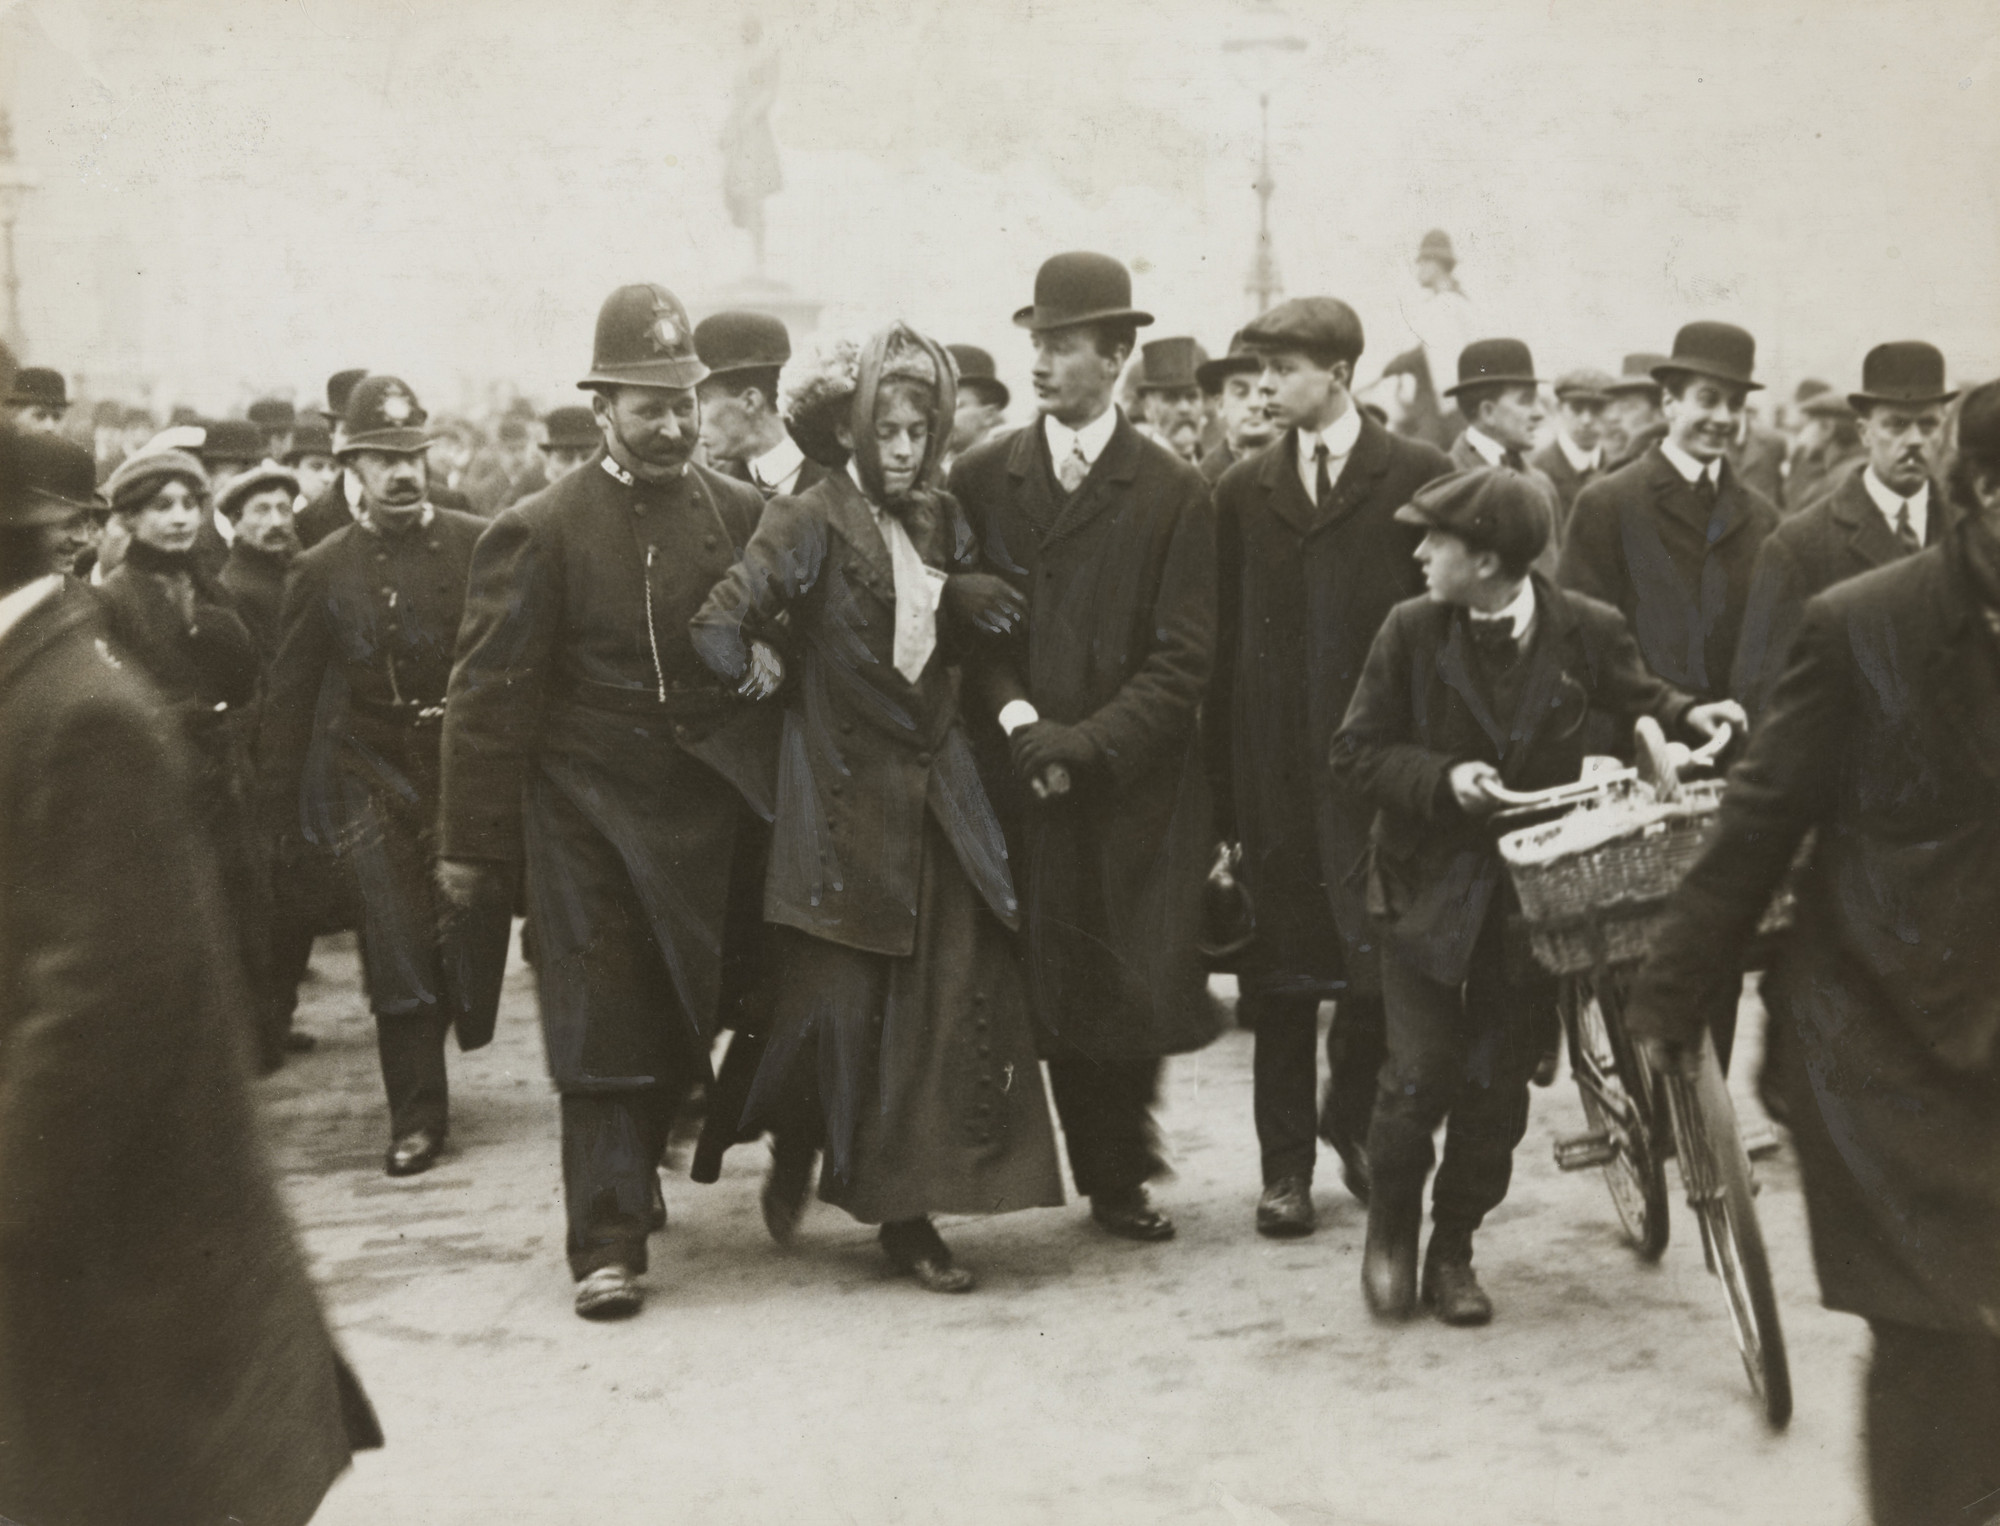 Brown Brothers. An Arrest When the Suffragettes Began a Riot in Parliament, London. 1912